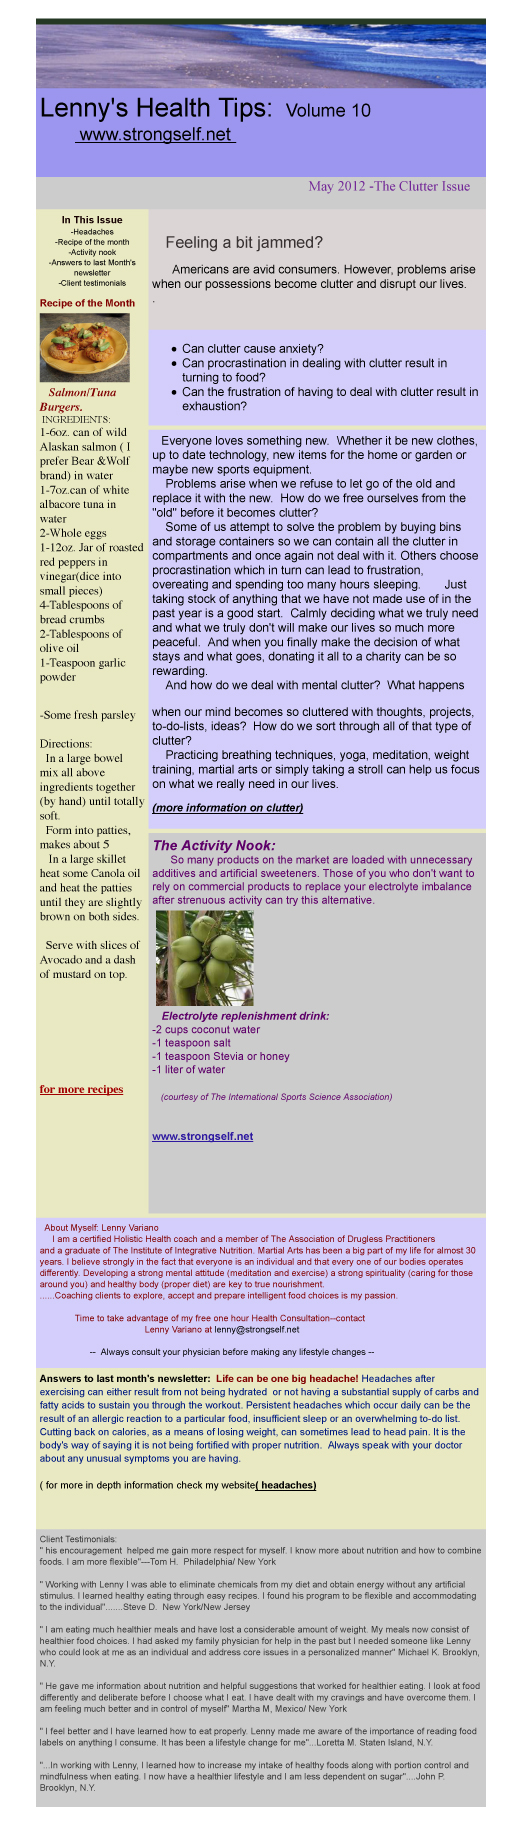 May 2012 Healthy Tips Newsletter from certified Holistic Health Counselor Lenny Variano